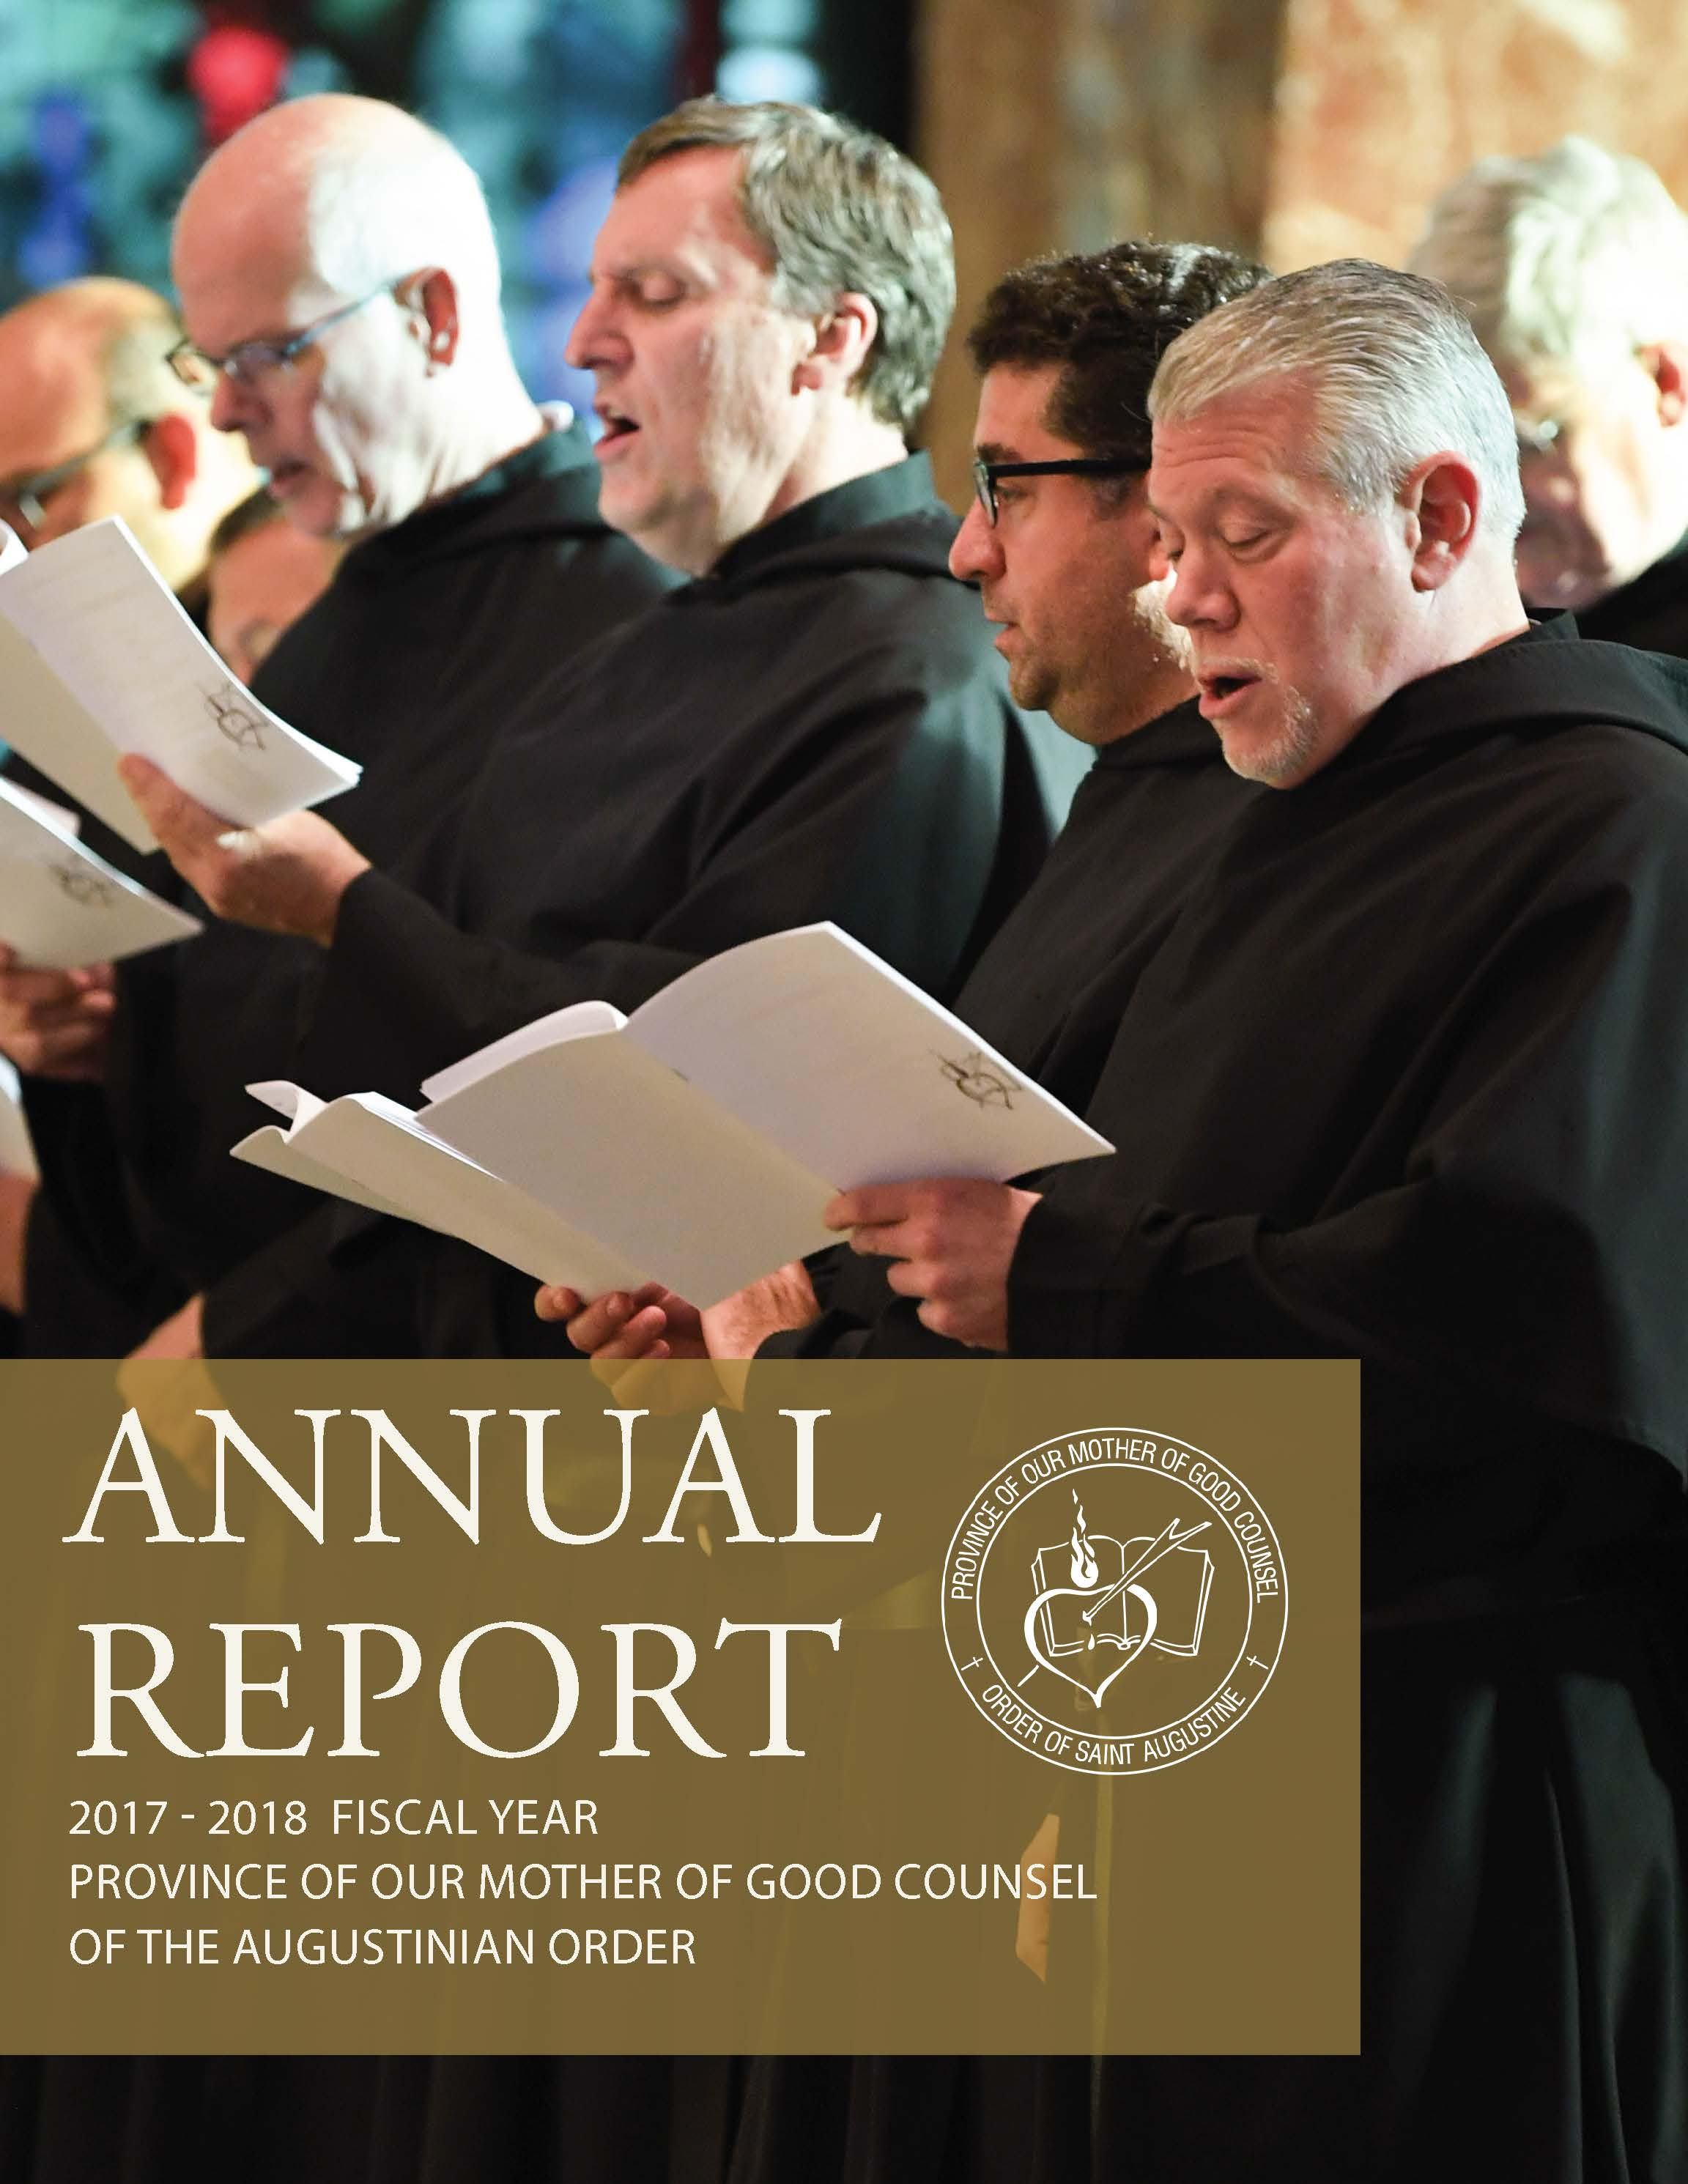 View Our 2017-2018 Annual report for the Midwest Augustinian province